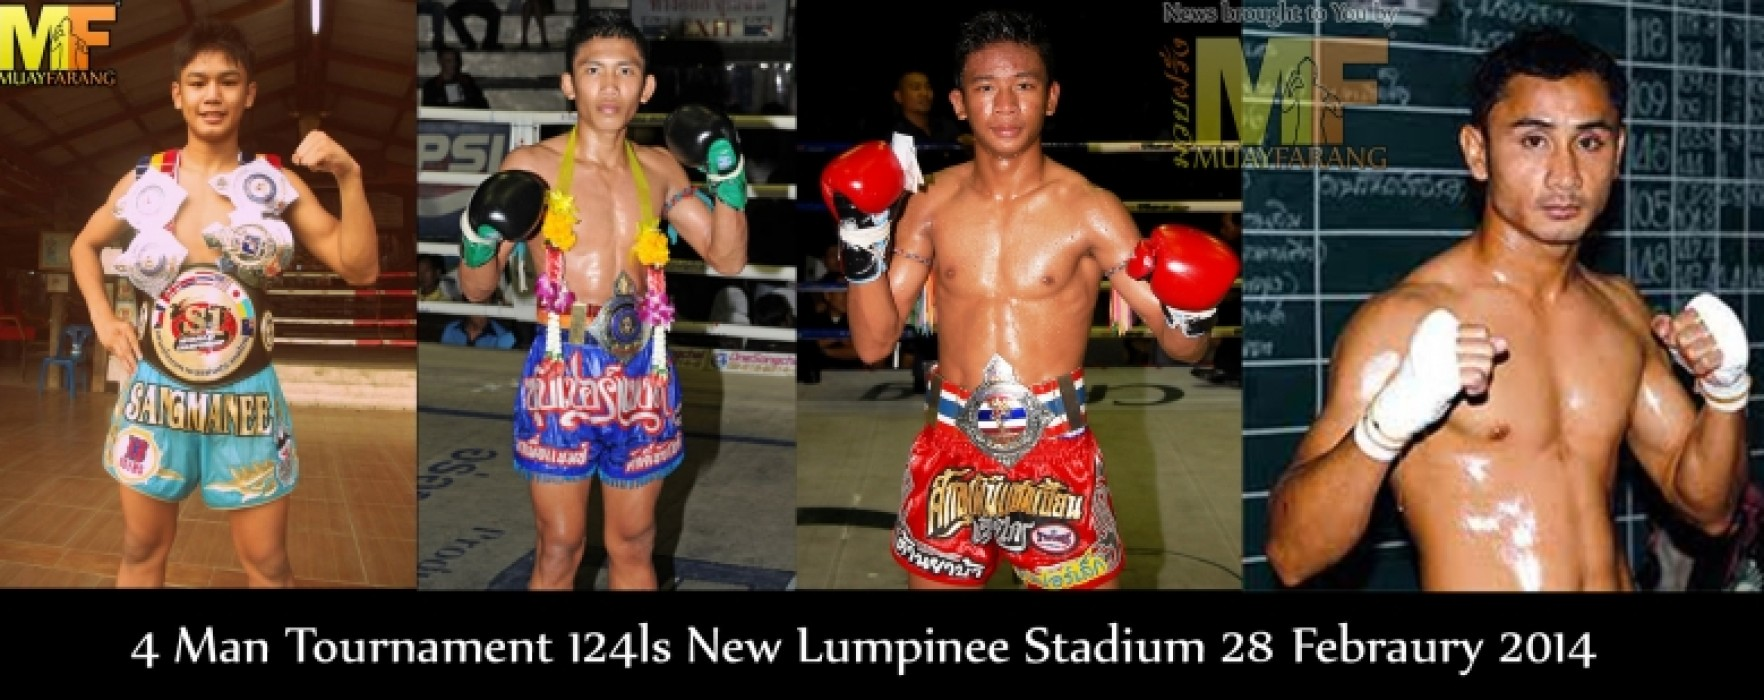 New Lumpinee Stadium grand opening with a 4 man Torunament and 300.000Baht prize